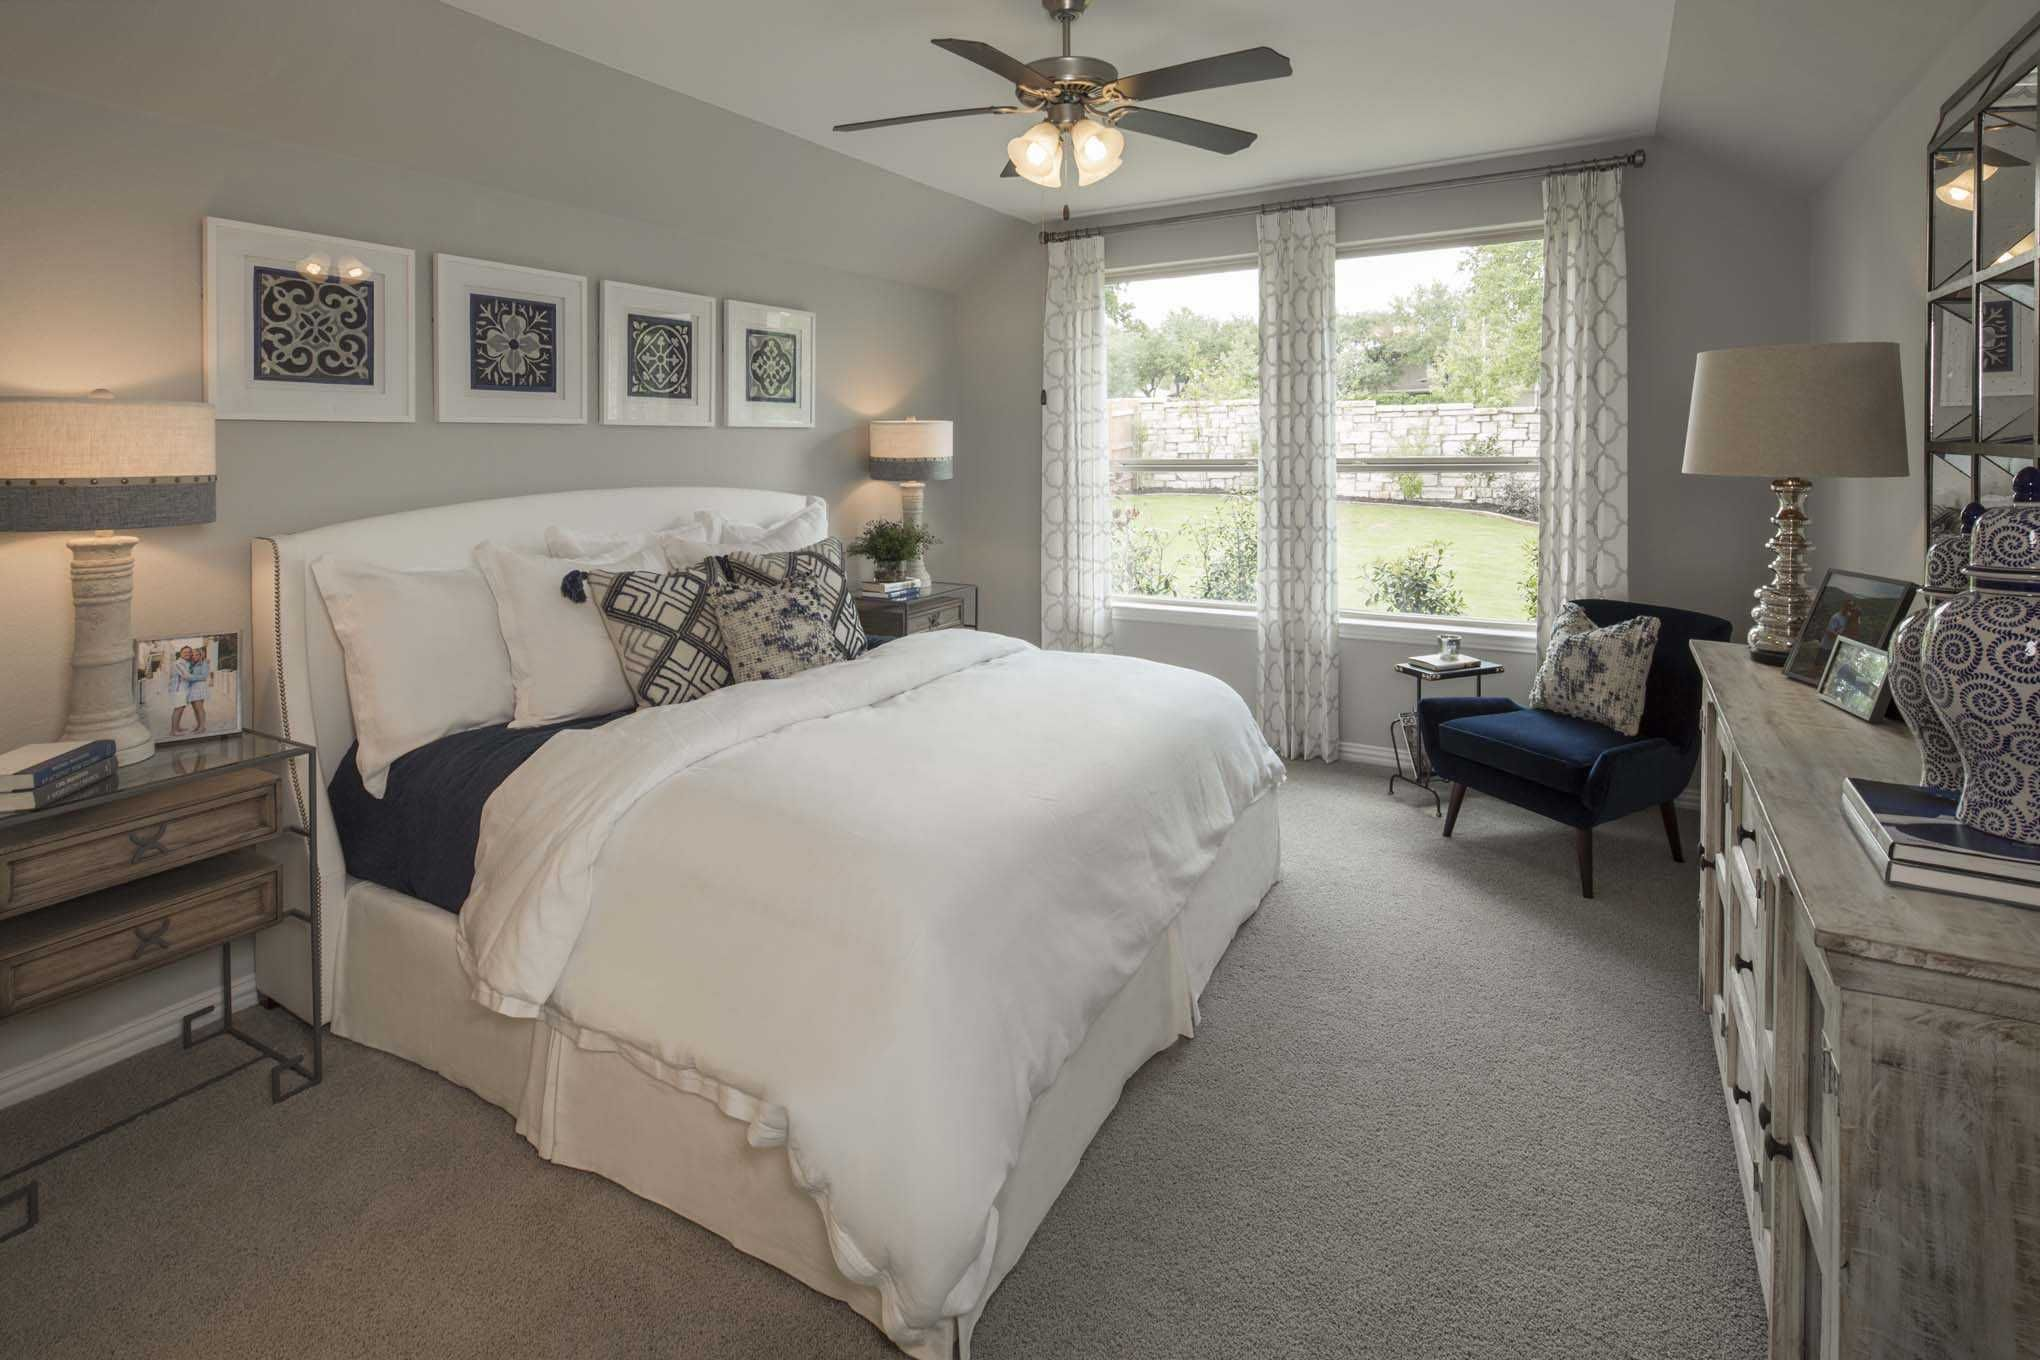 Prime Highland Homes Dorchester Model Home In Houston Texas Grand Home Interior And Landscaping Oversignezvosmurscom